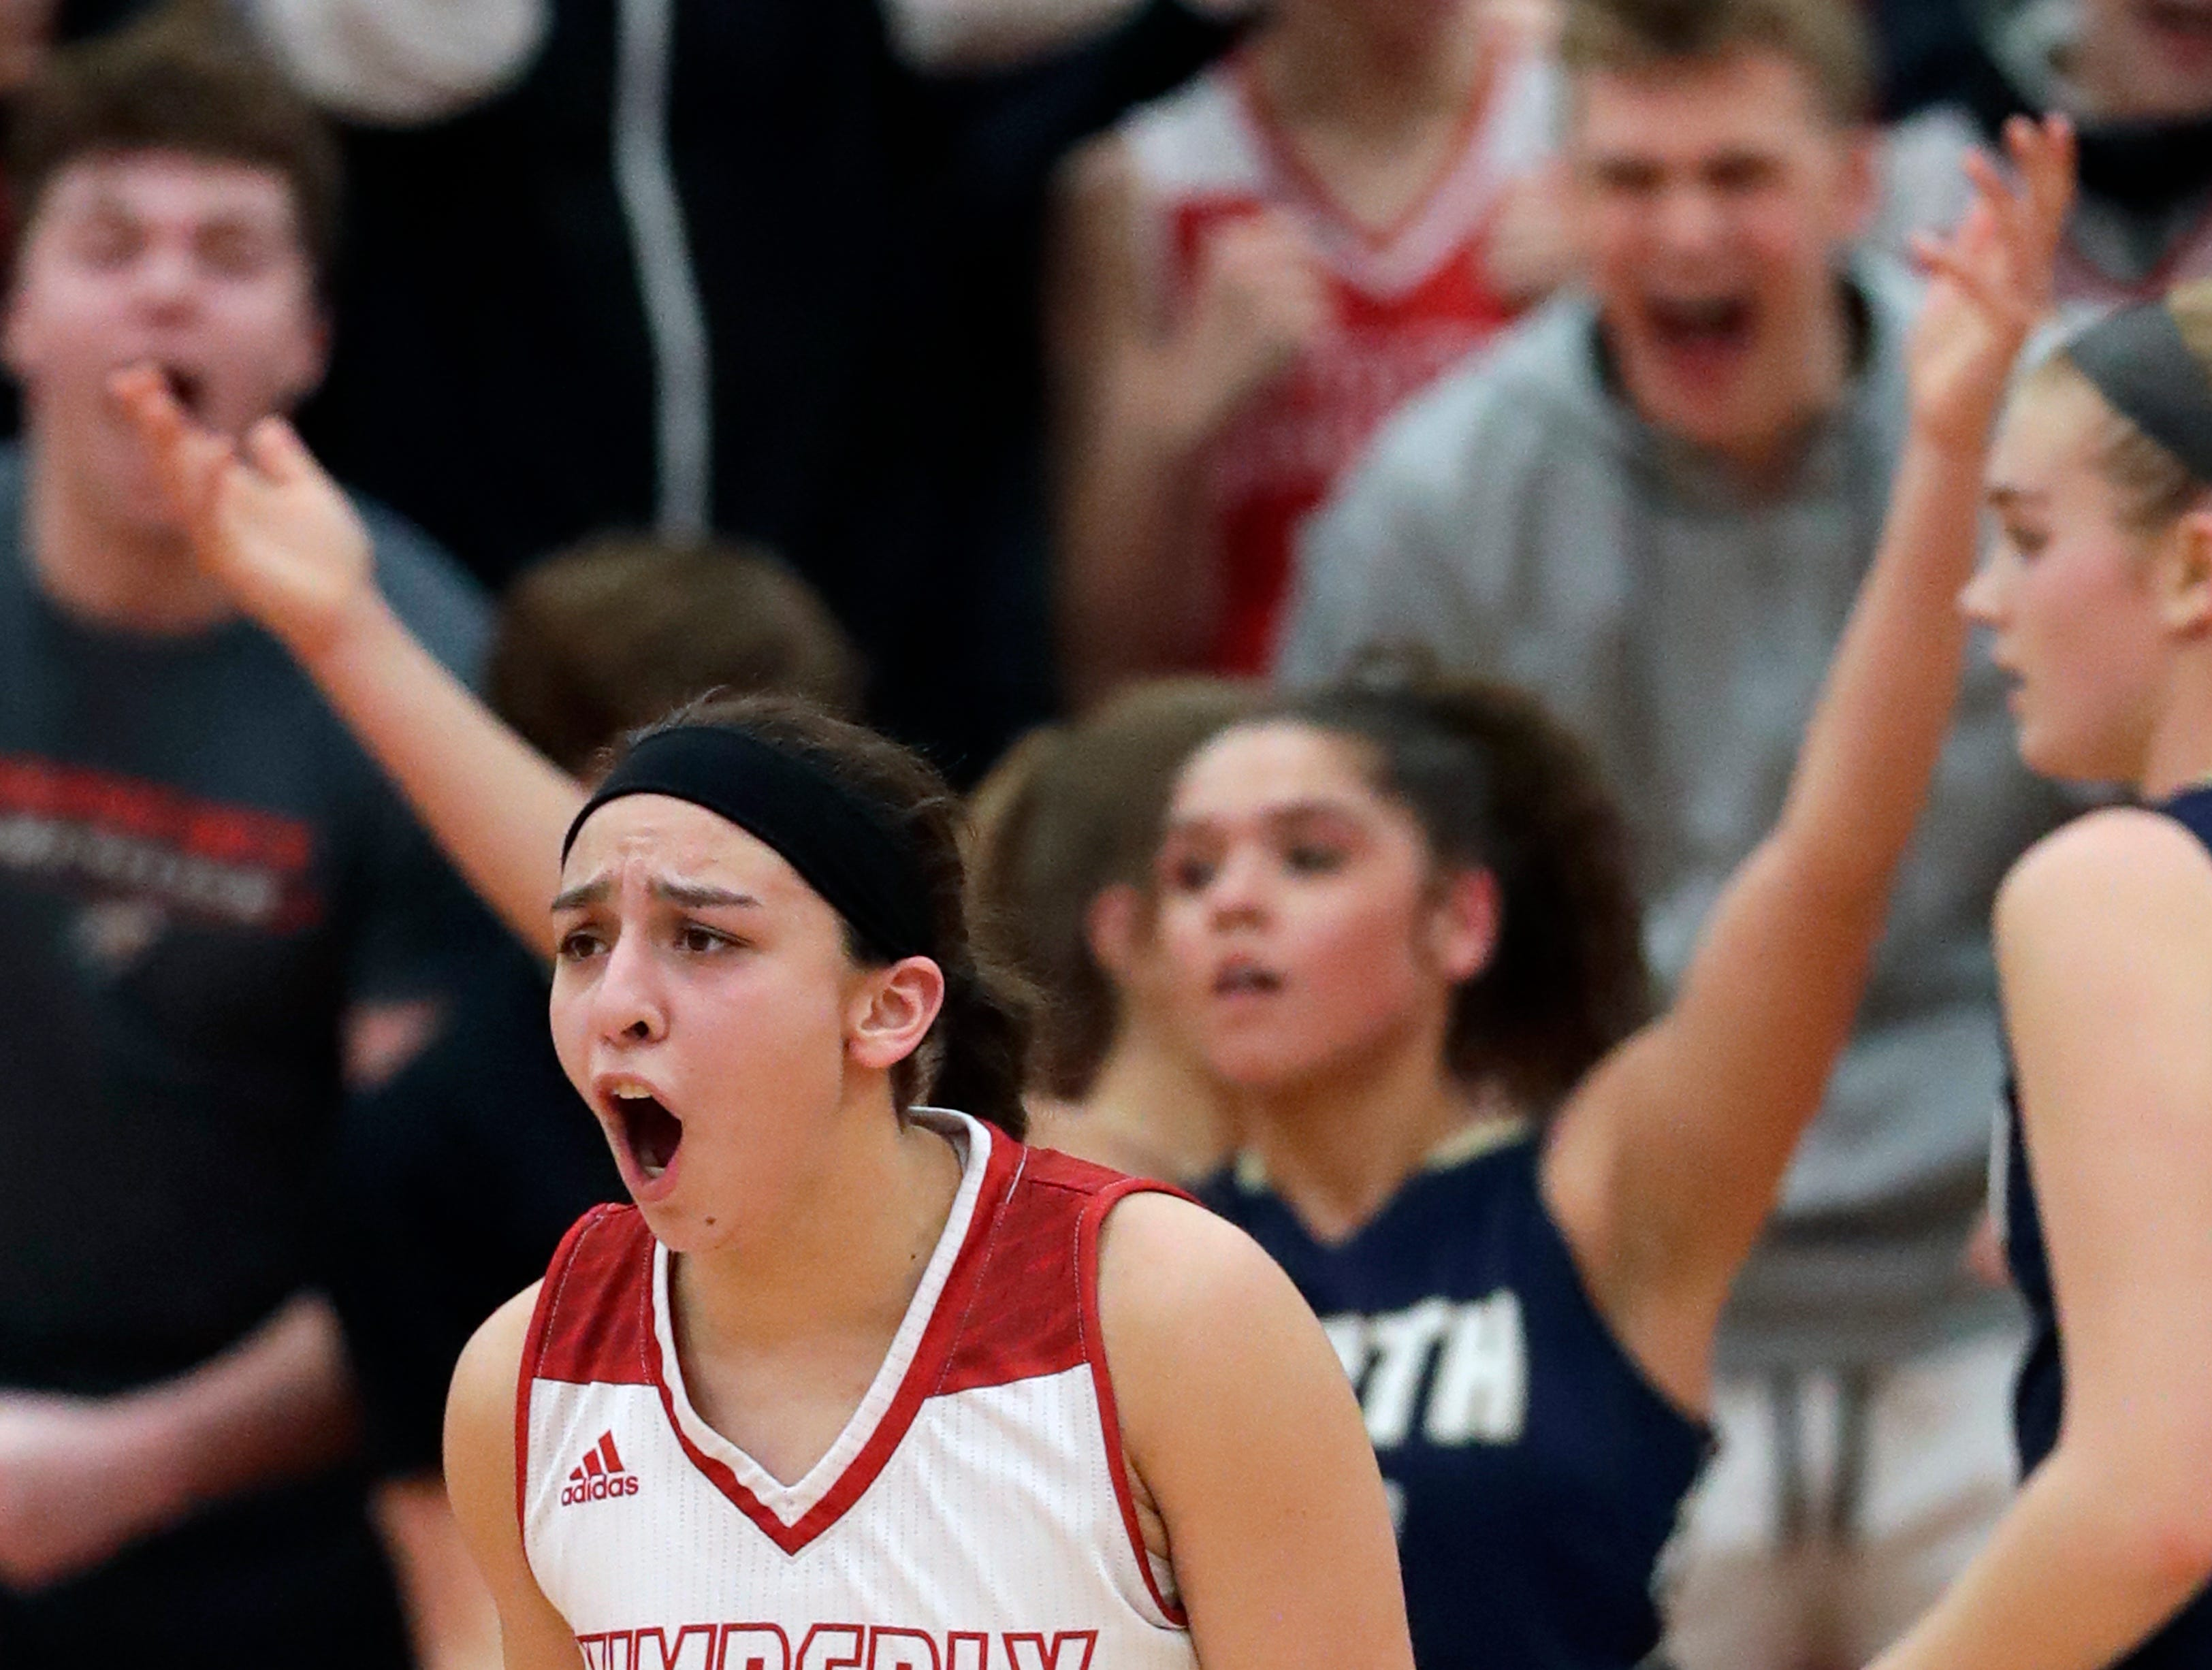 Kimberly High School's Shea Dechant (24) reacts after making a shot and getting fouled to give her team the lead late in the game against Appleton North High School during their girls basketball game Monday, February 11, 2019, in Kimberly, Wis. Dan Powers/USA TODAY NETWORK-Wisconsin